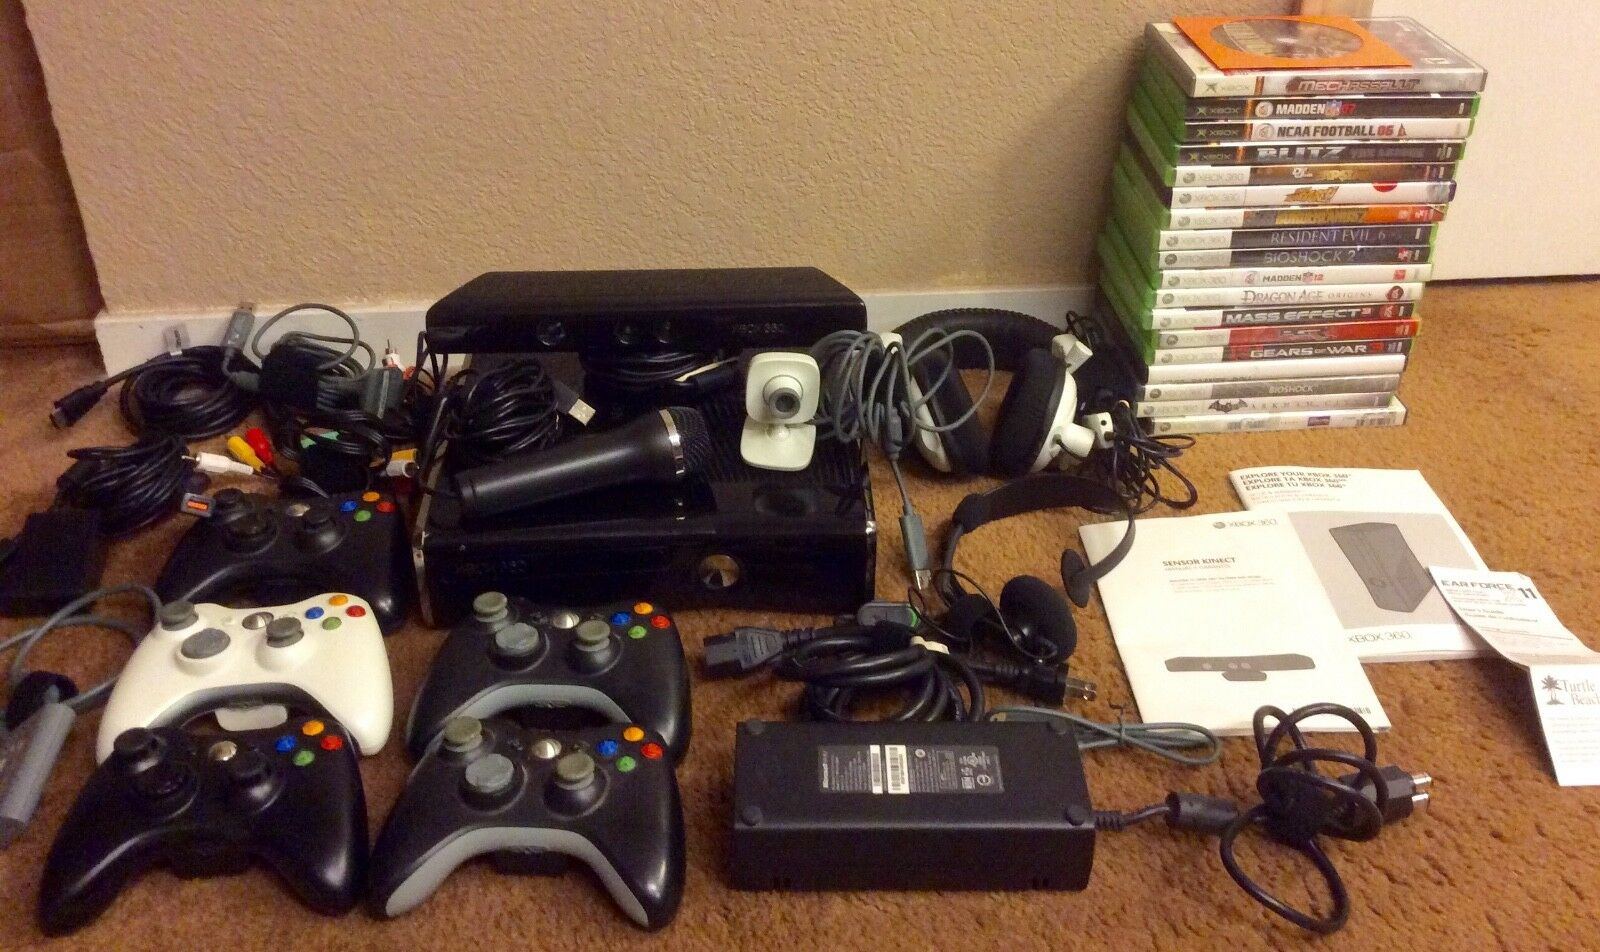 Xbox 360 - Microsoft Xbox 360 Slim 250gb Console w/ Kinect +19 Games HUGE Bundle Lot System